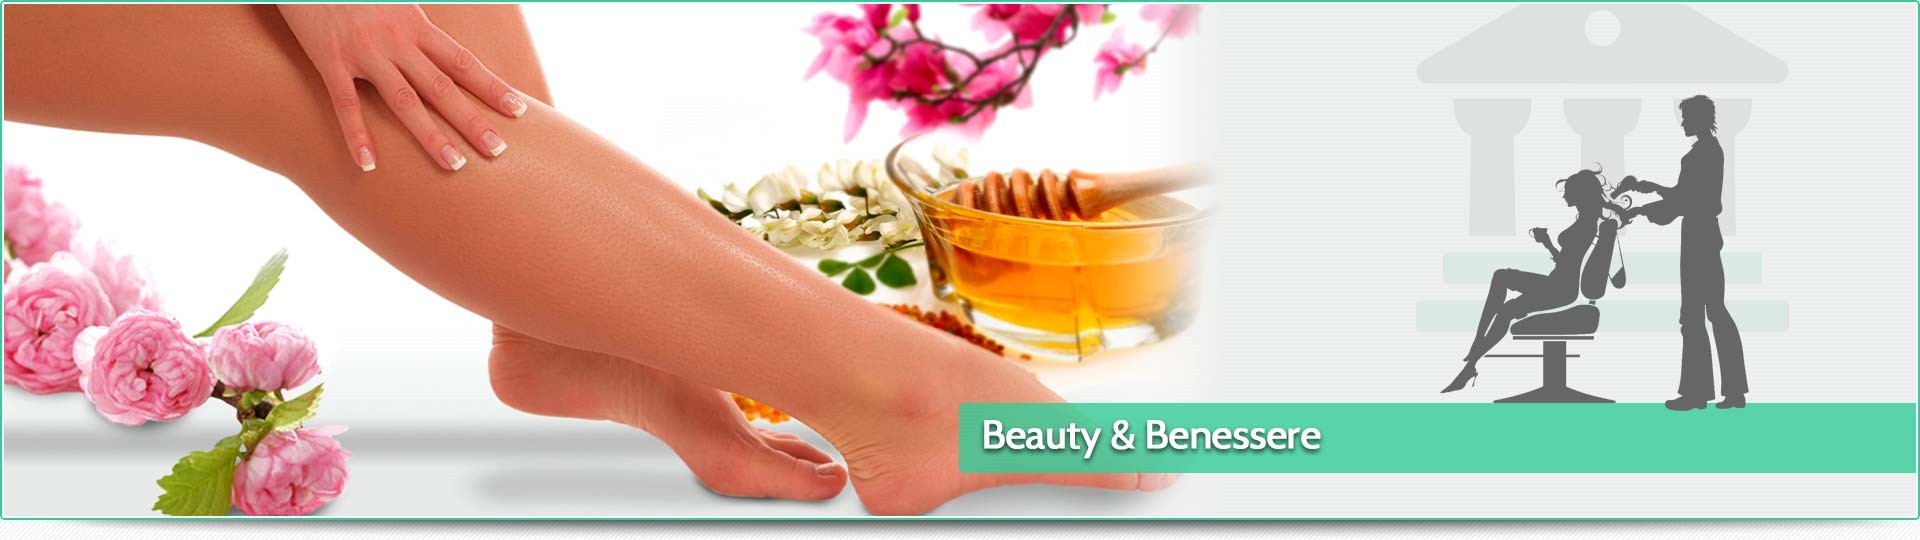 Beauty & Benessere